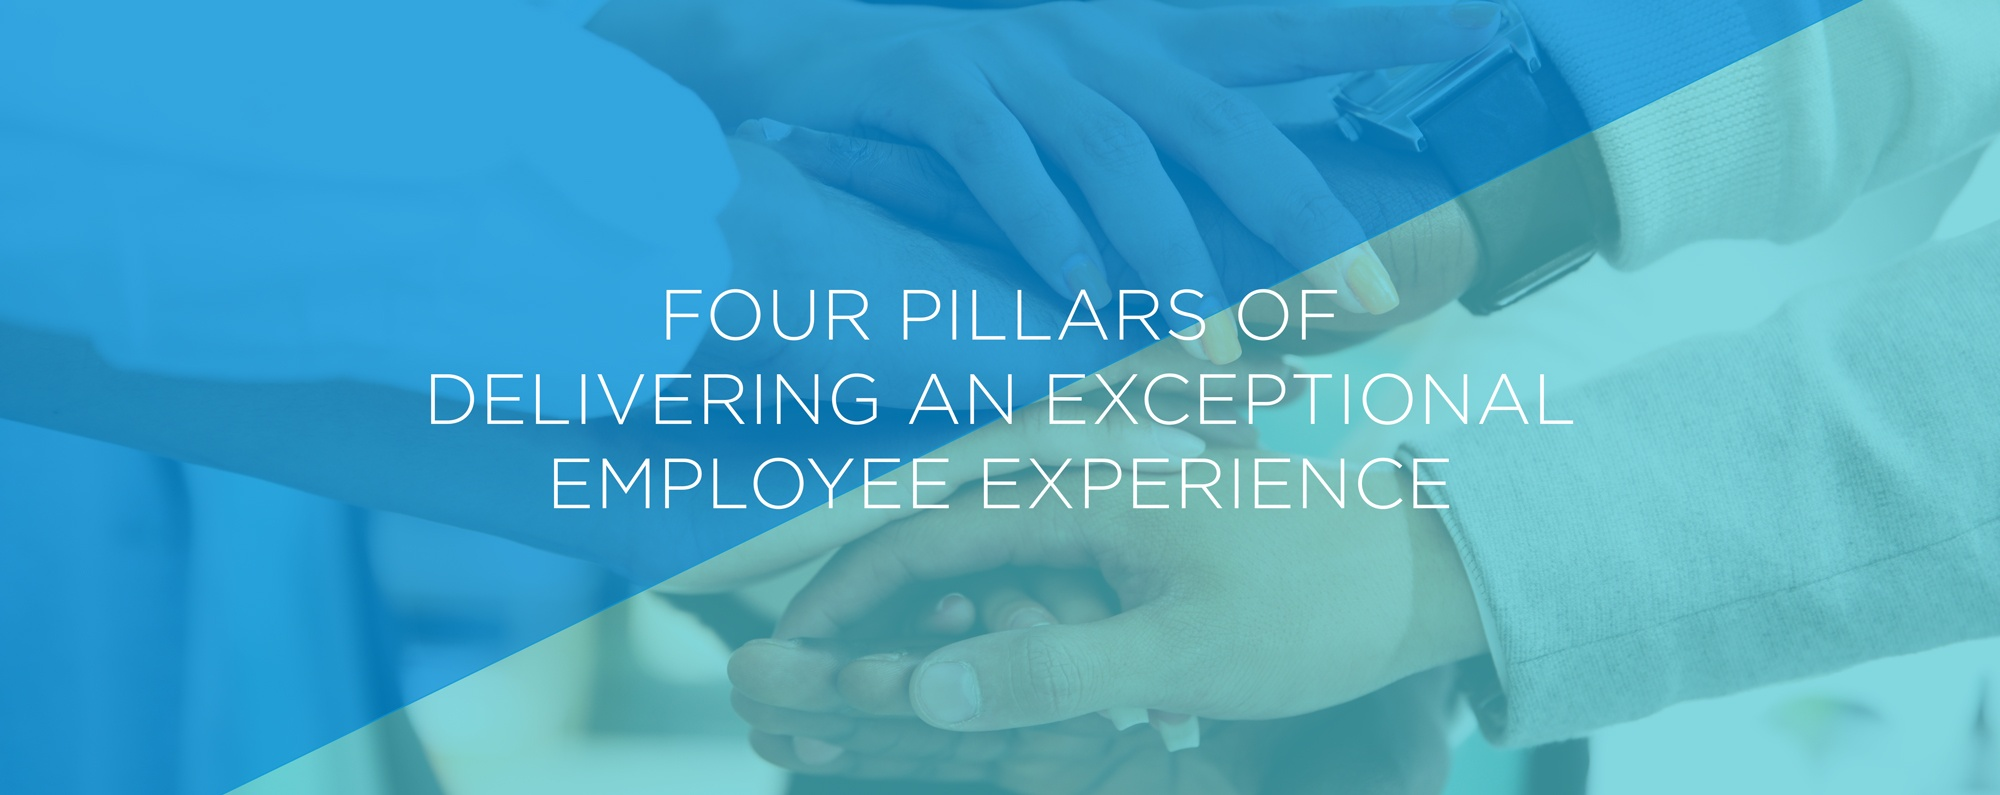 Four Pillars of Delivering an Exceptional Employee Experience